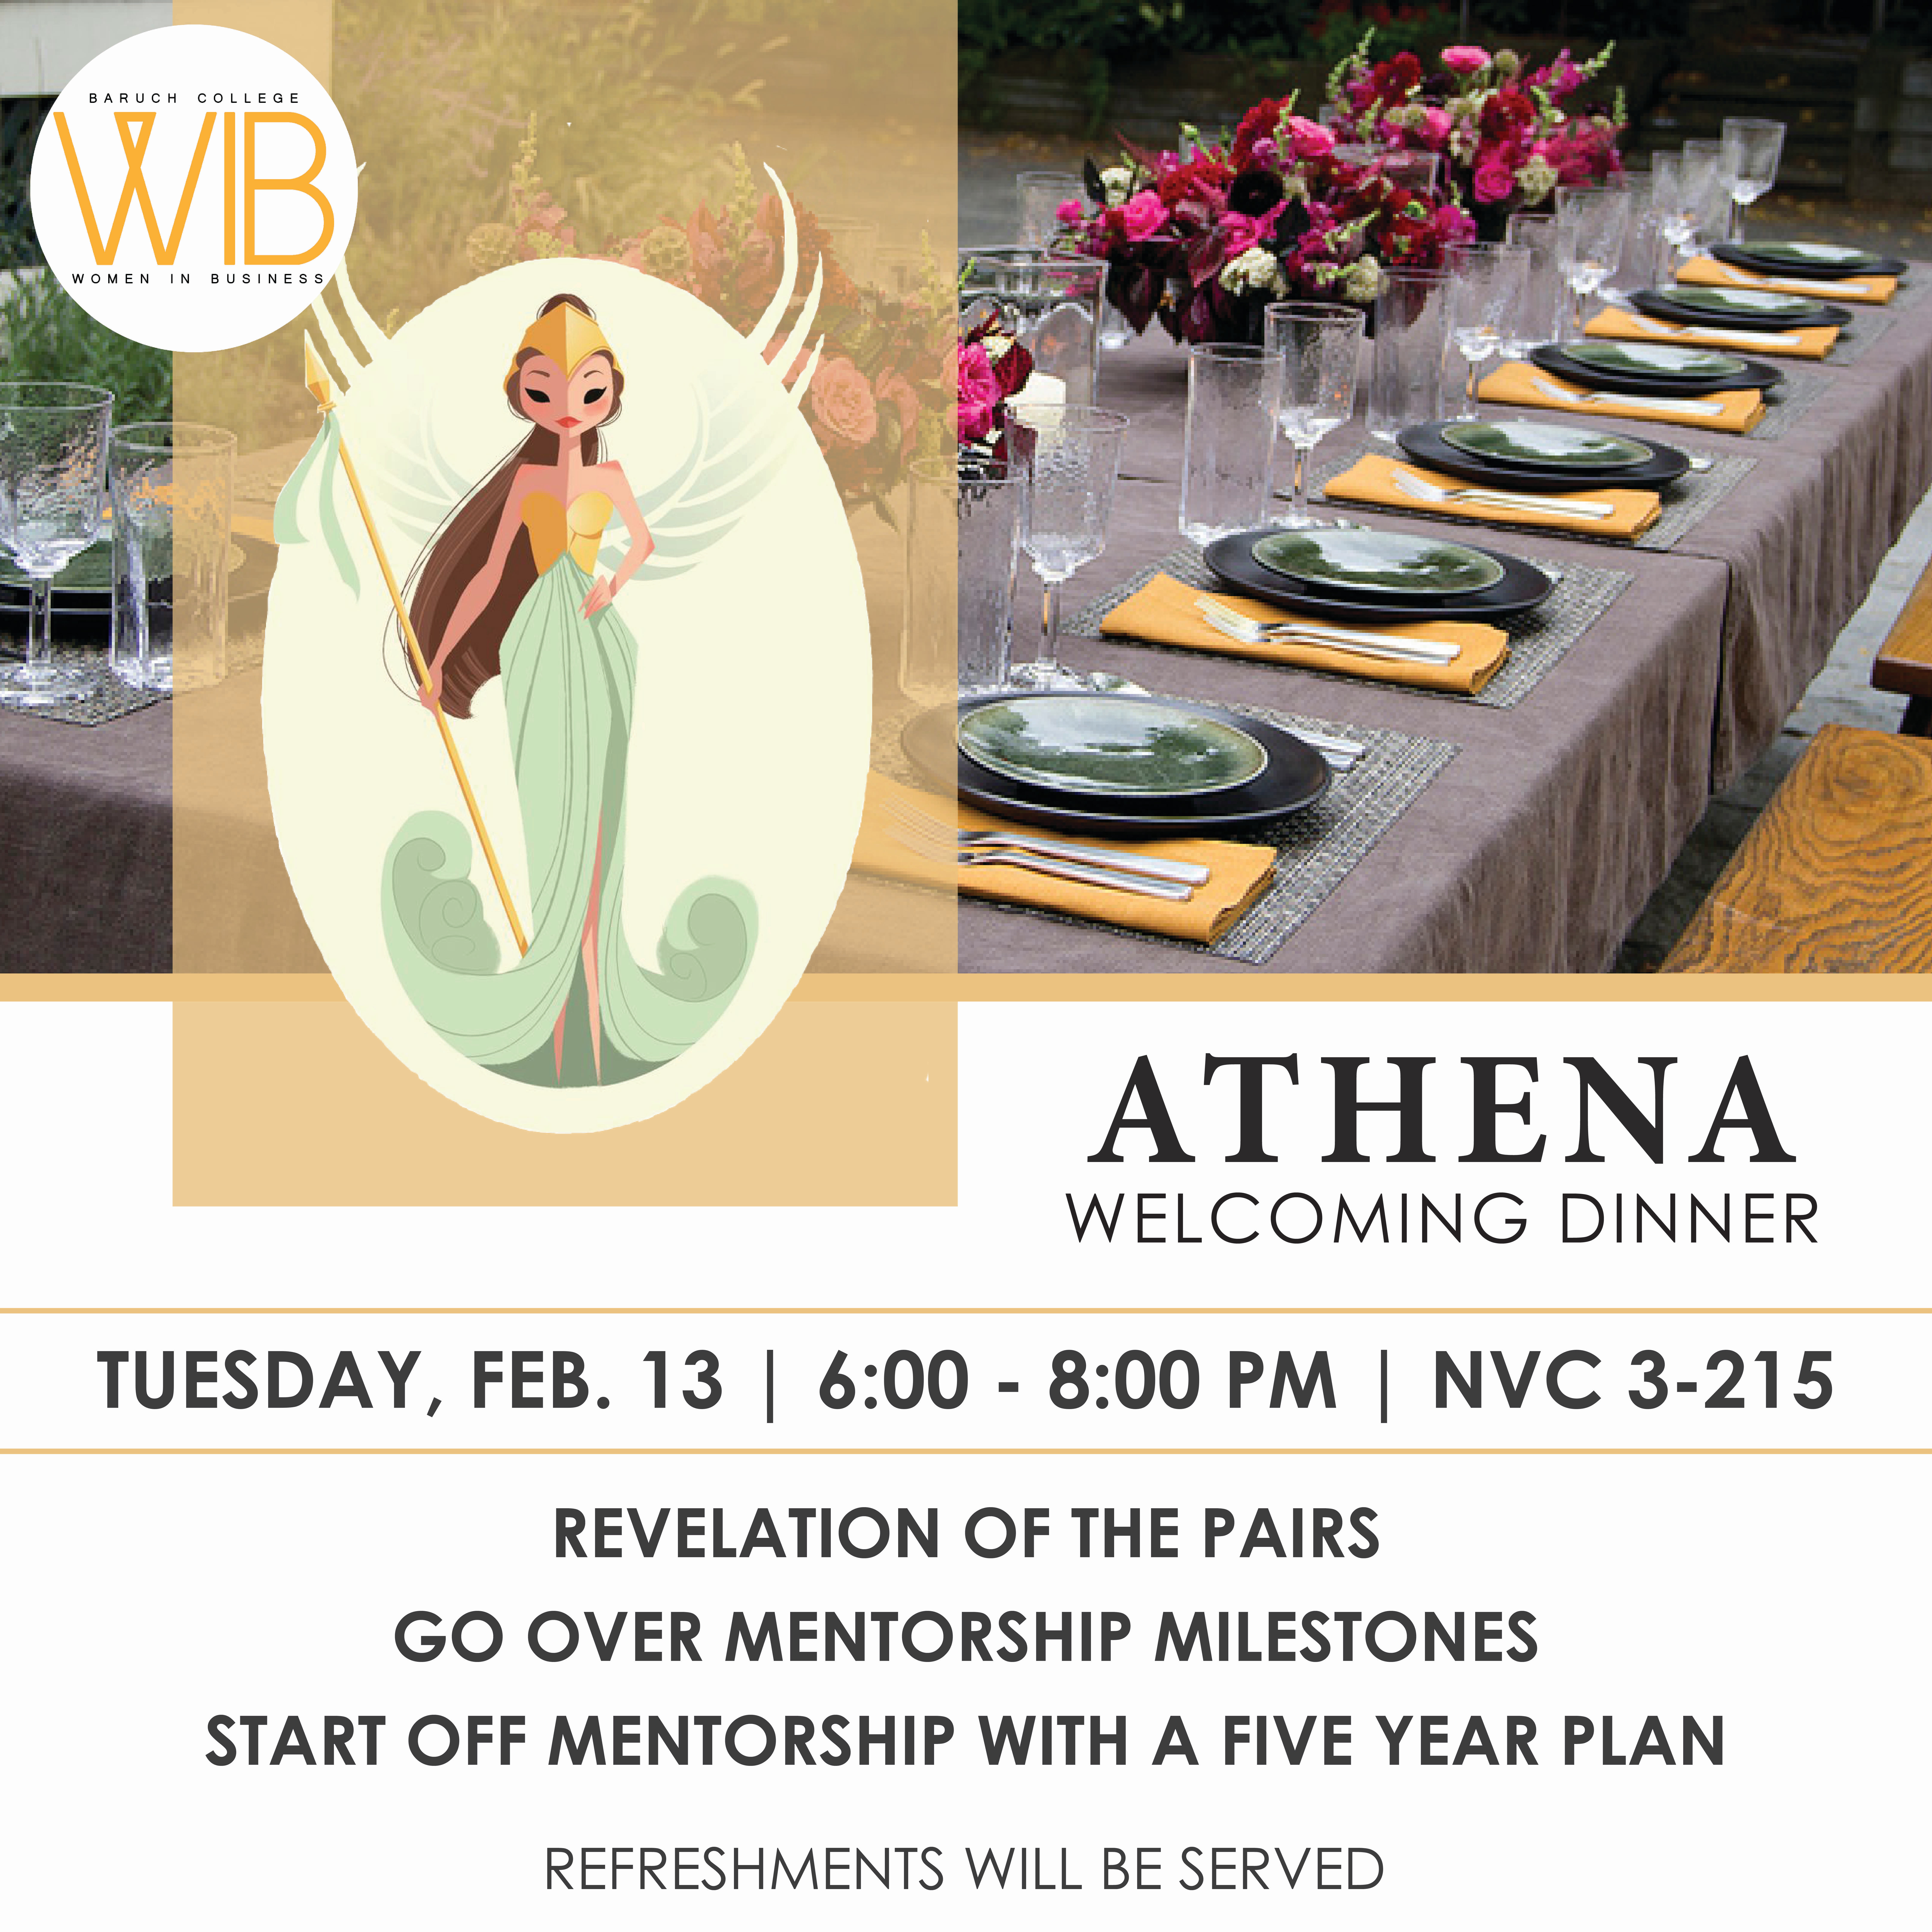 ATHENA Welcoming Dinner